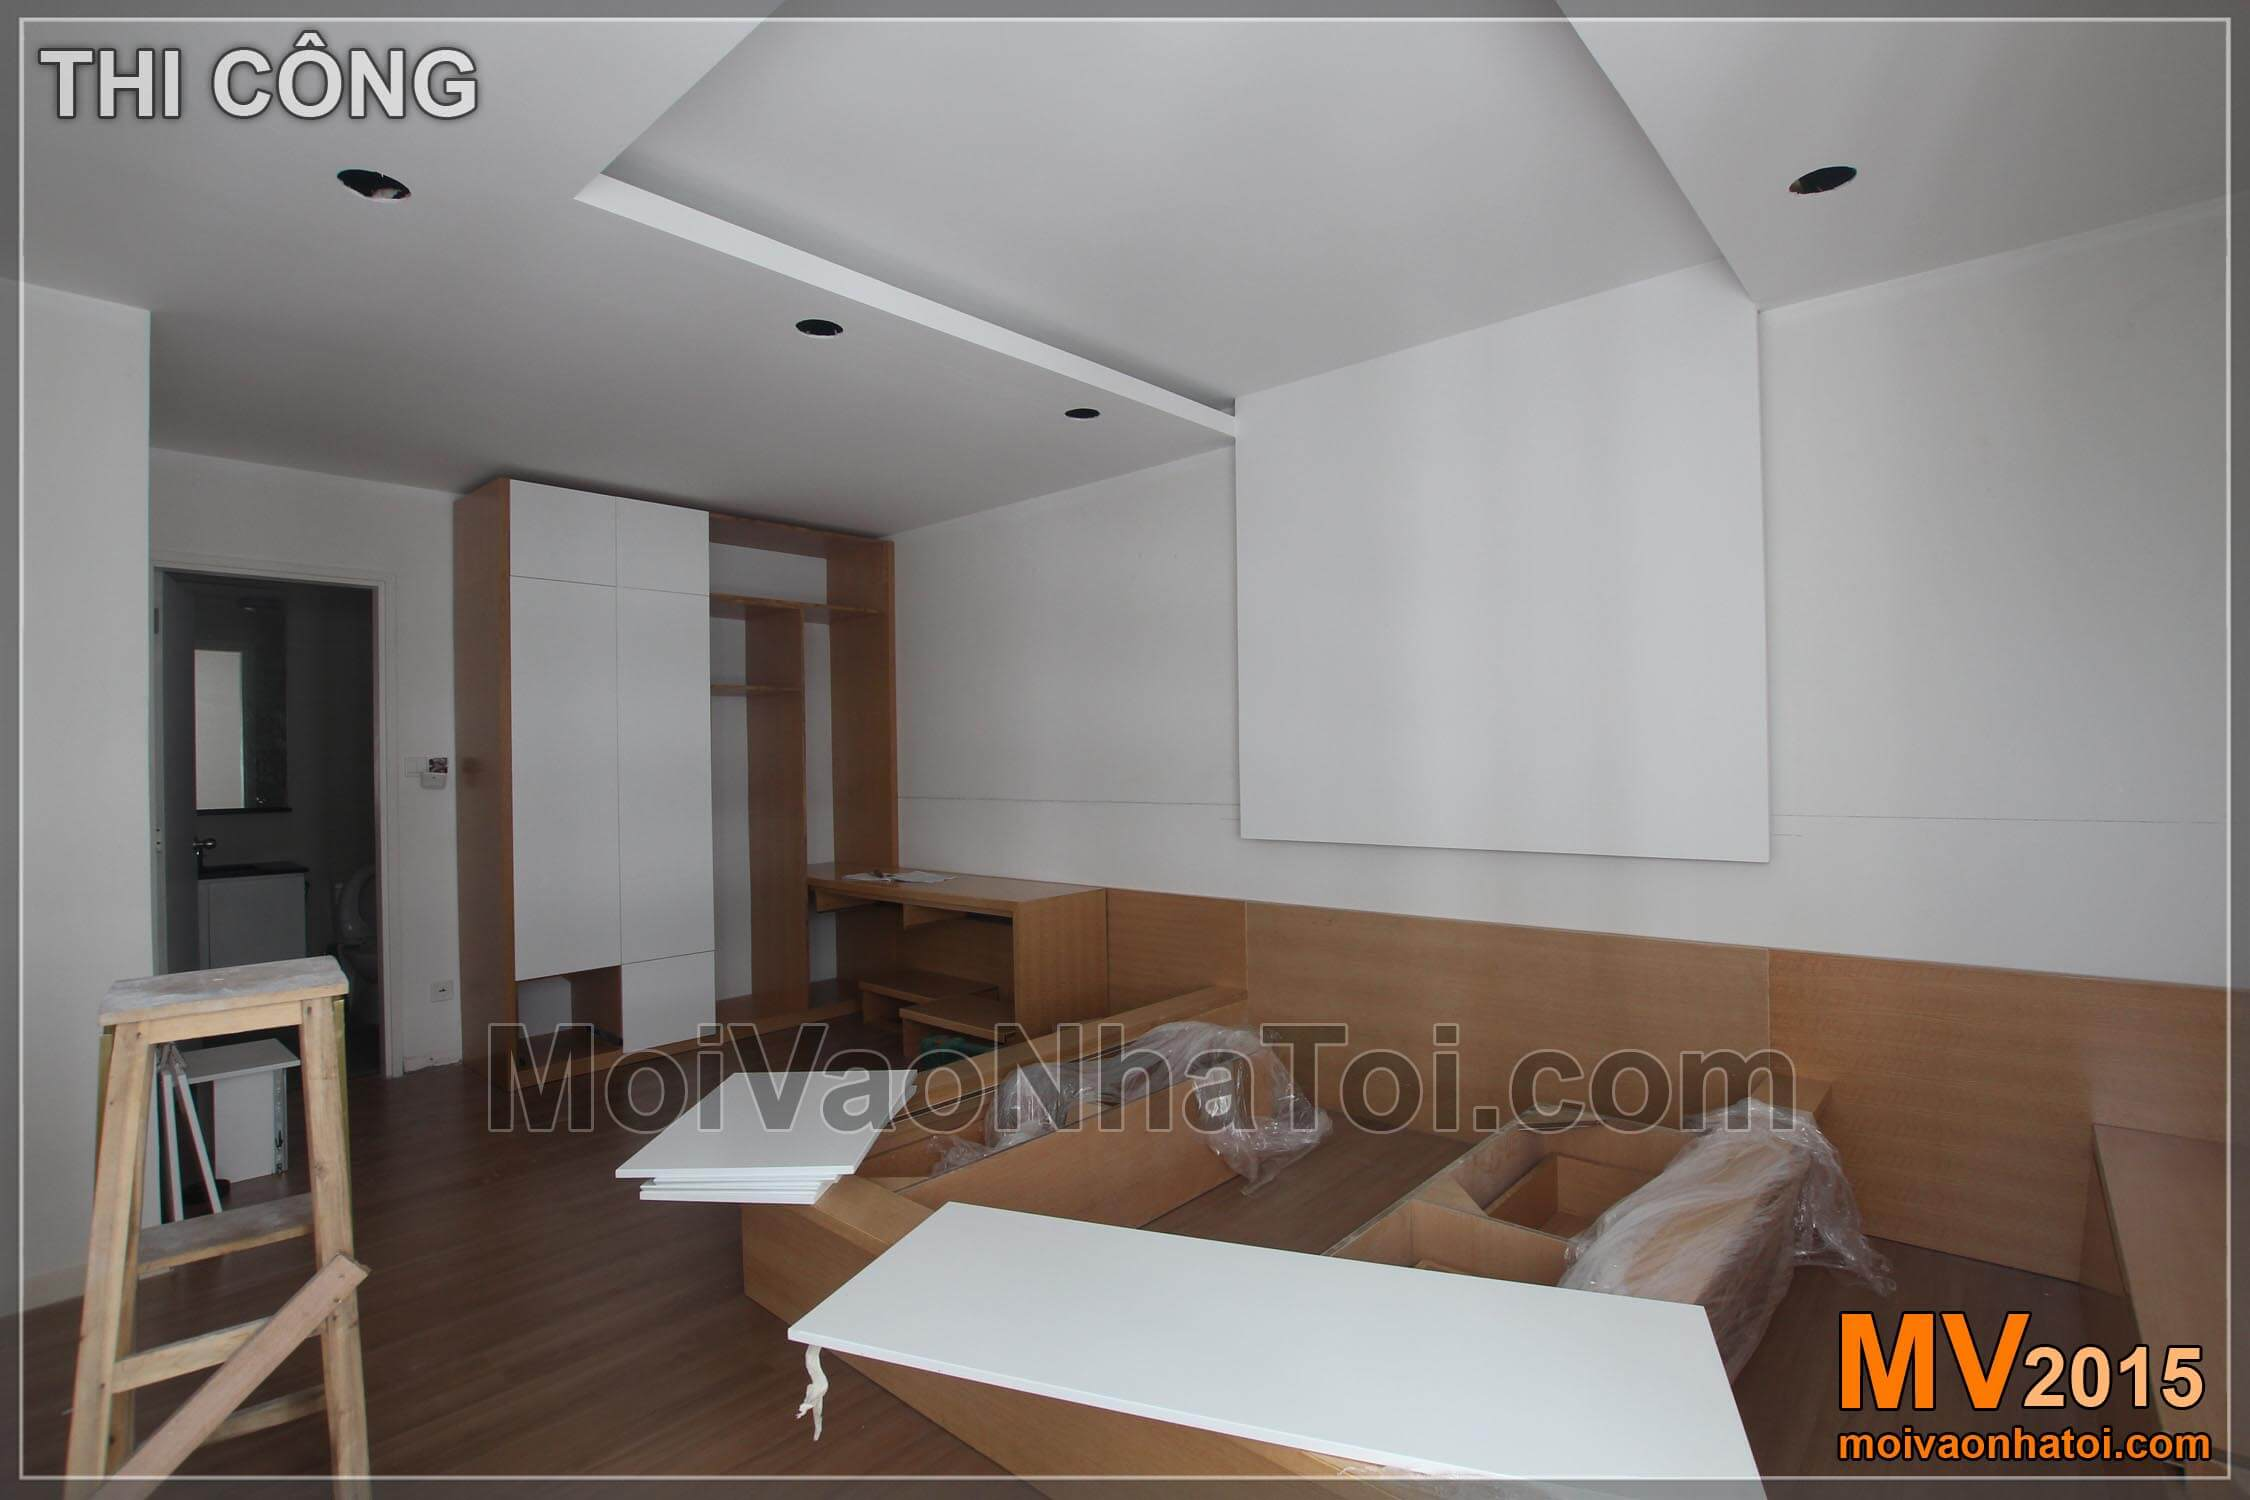 mulberry lane apartment bedroom furniture fitting process. 120m2 apartment design